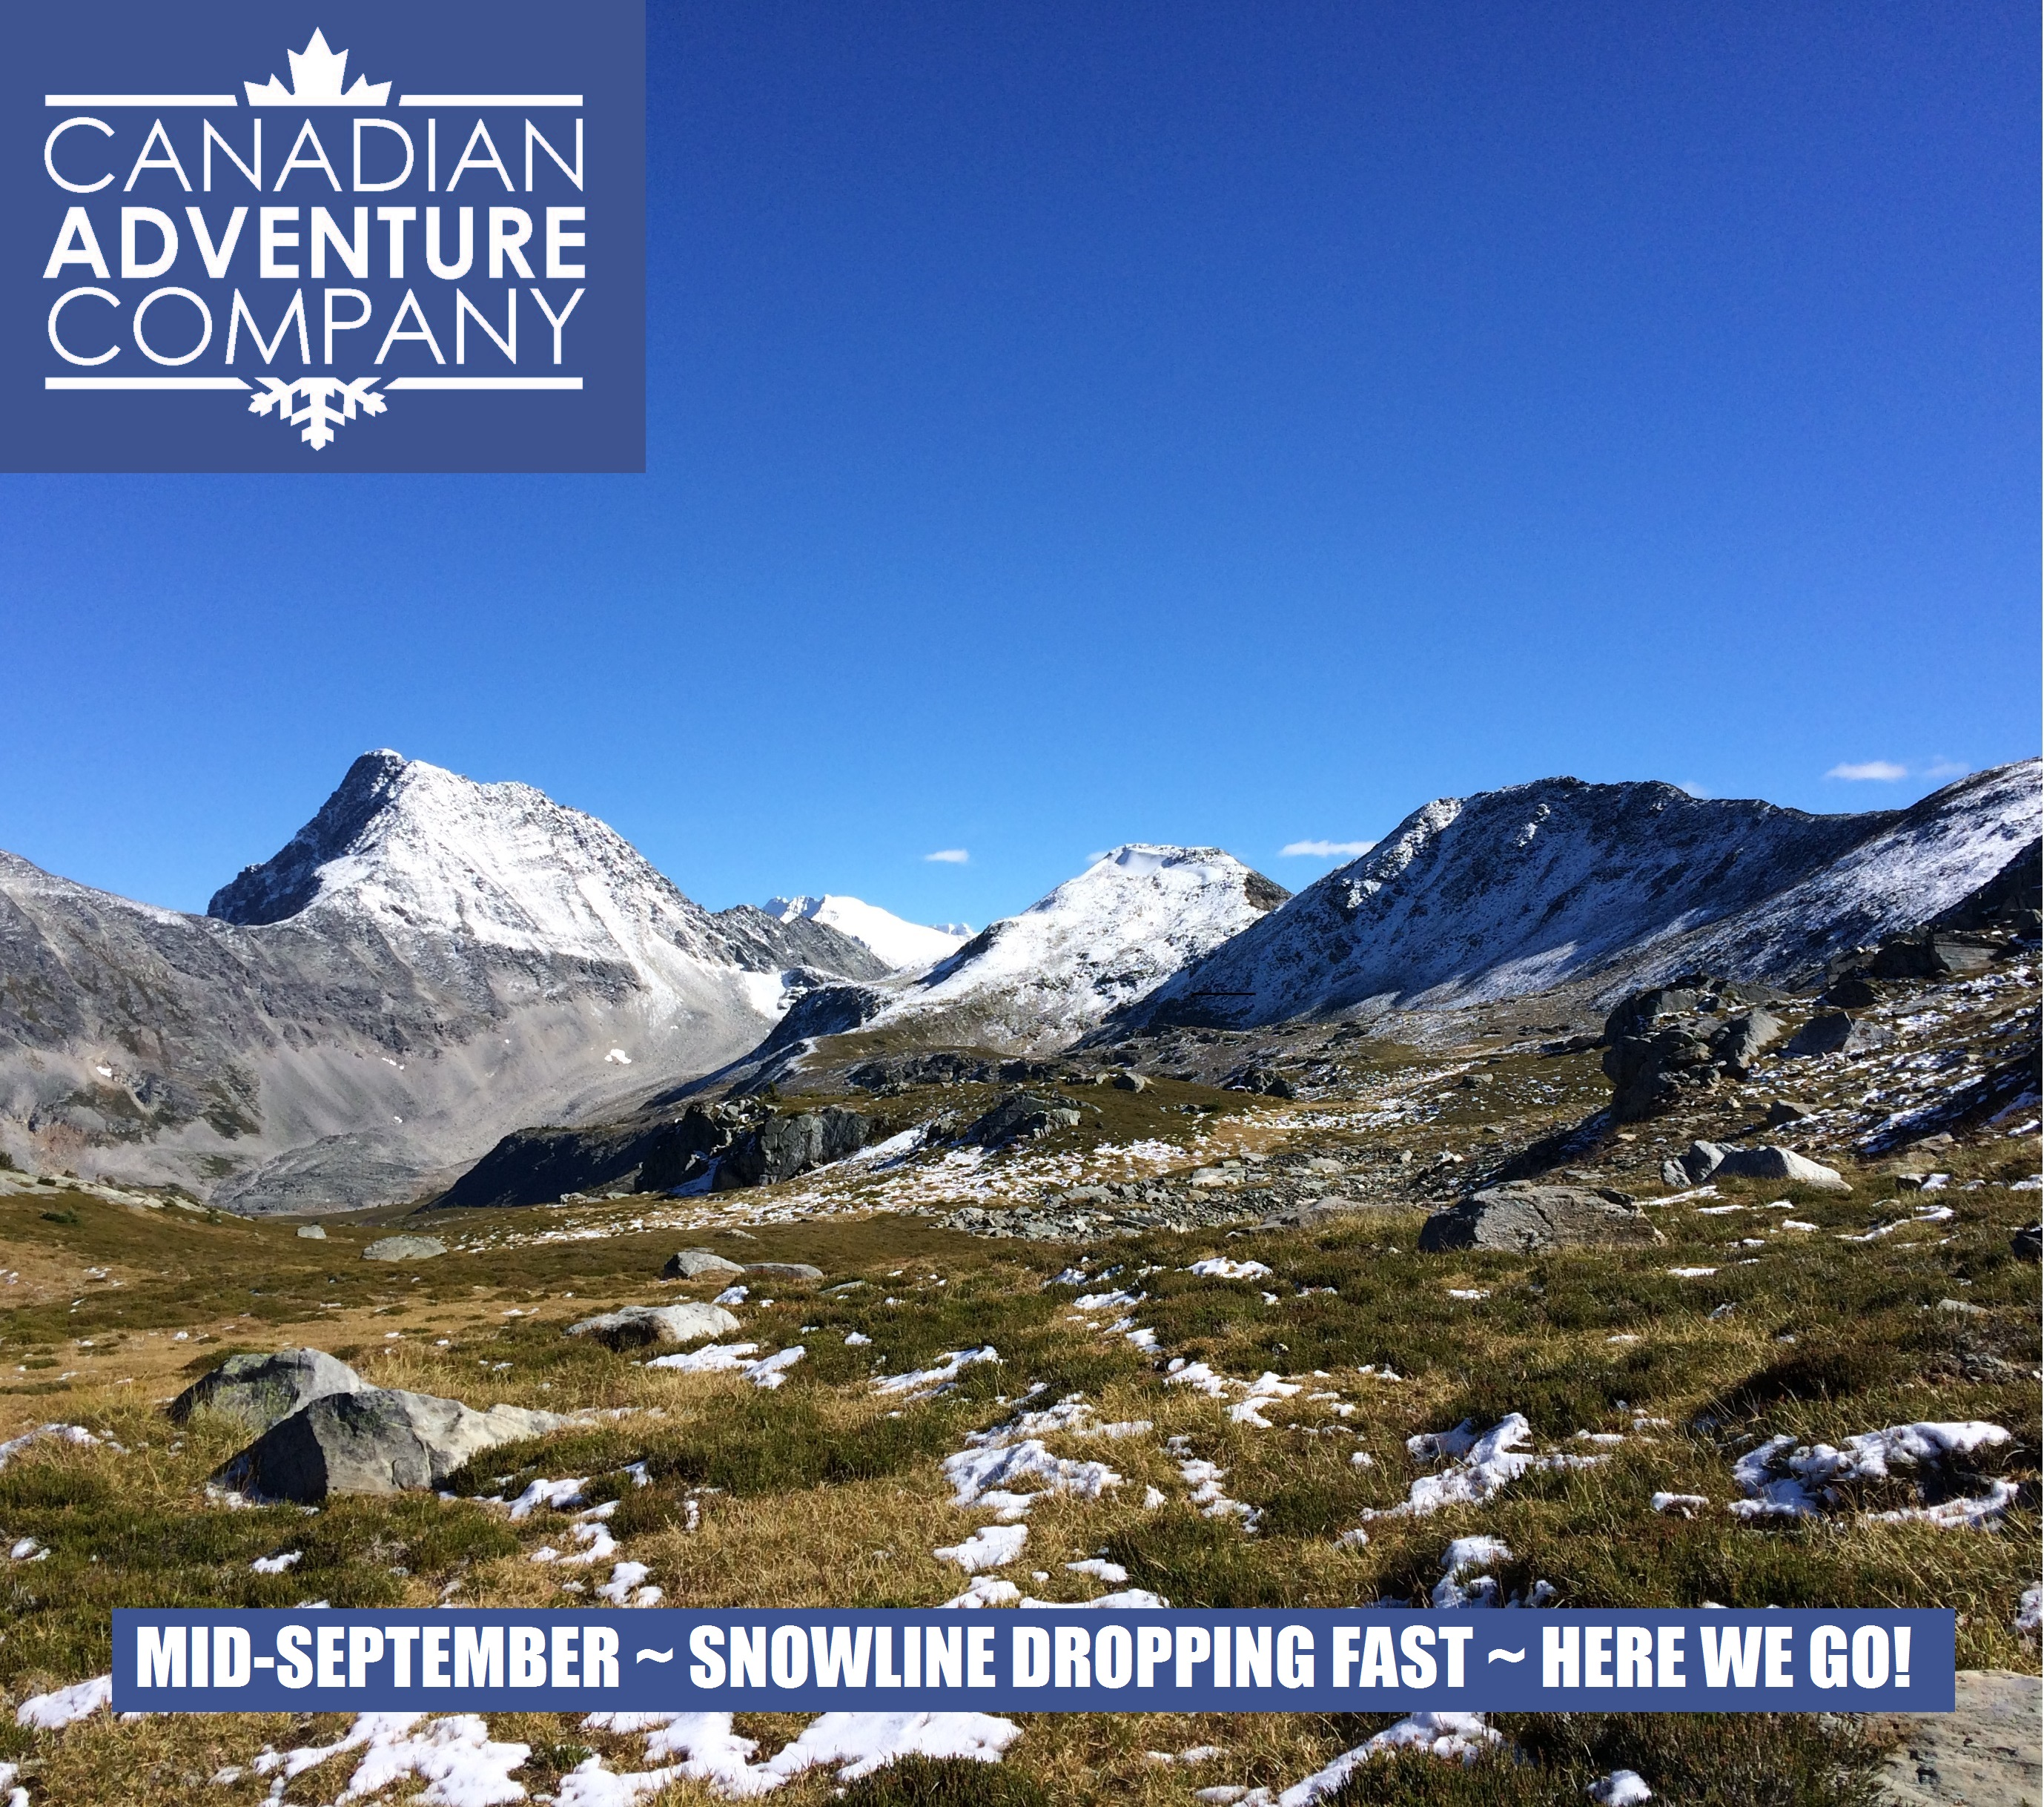 Mallard Mountain Lodge Snowline dropping fast ~ here we go for another winter!